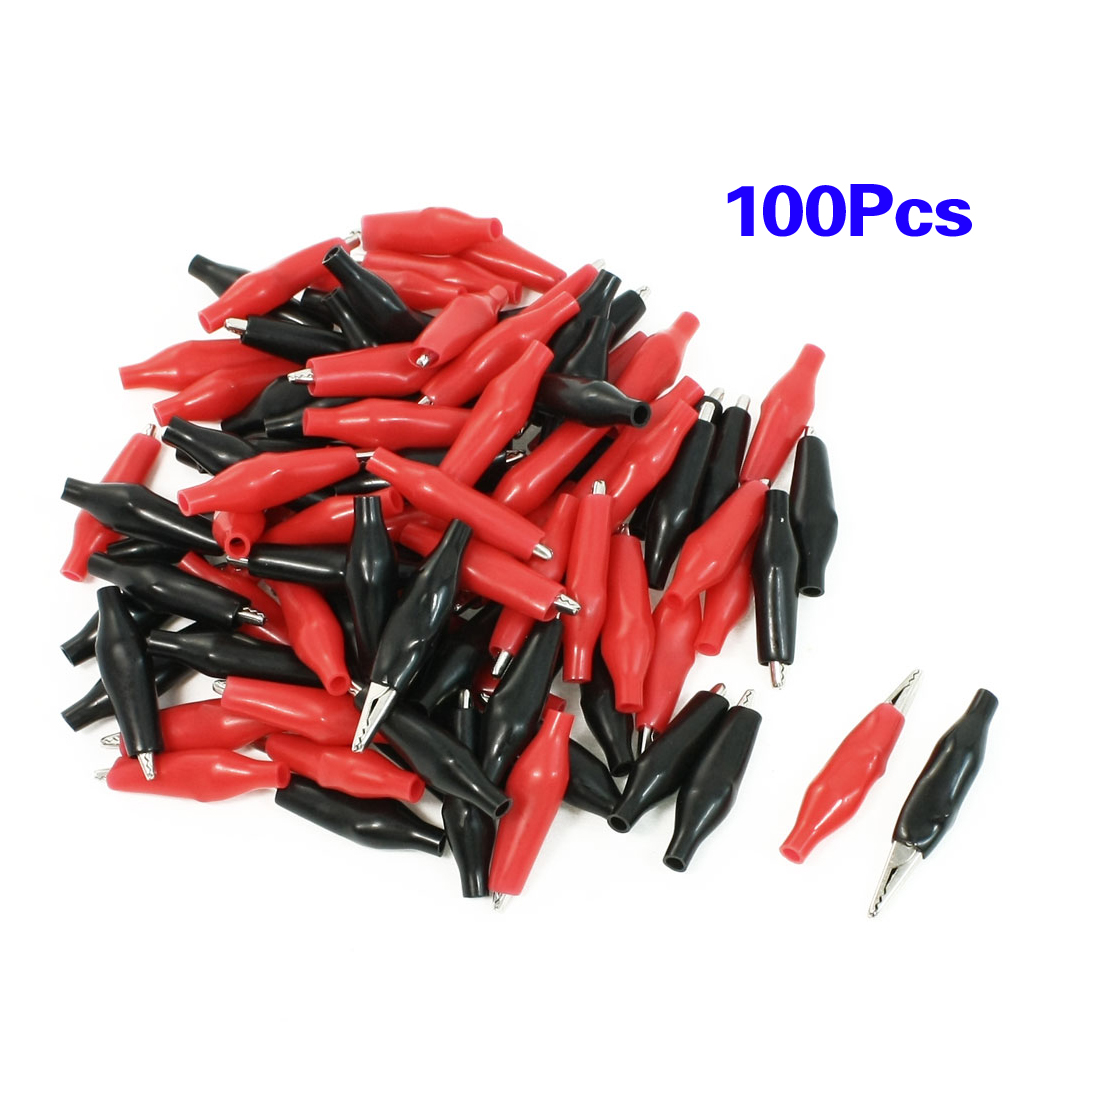 LHLL-100 Pcs Croc Clip for Test Leads Black / Red Crocodile Clips S UK 100 pcs flat small test clip for multimeter red black